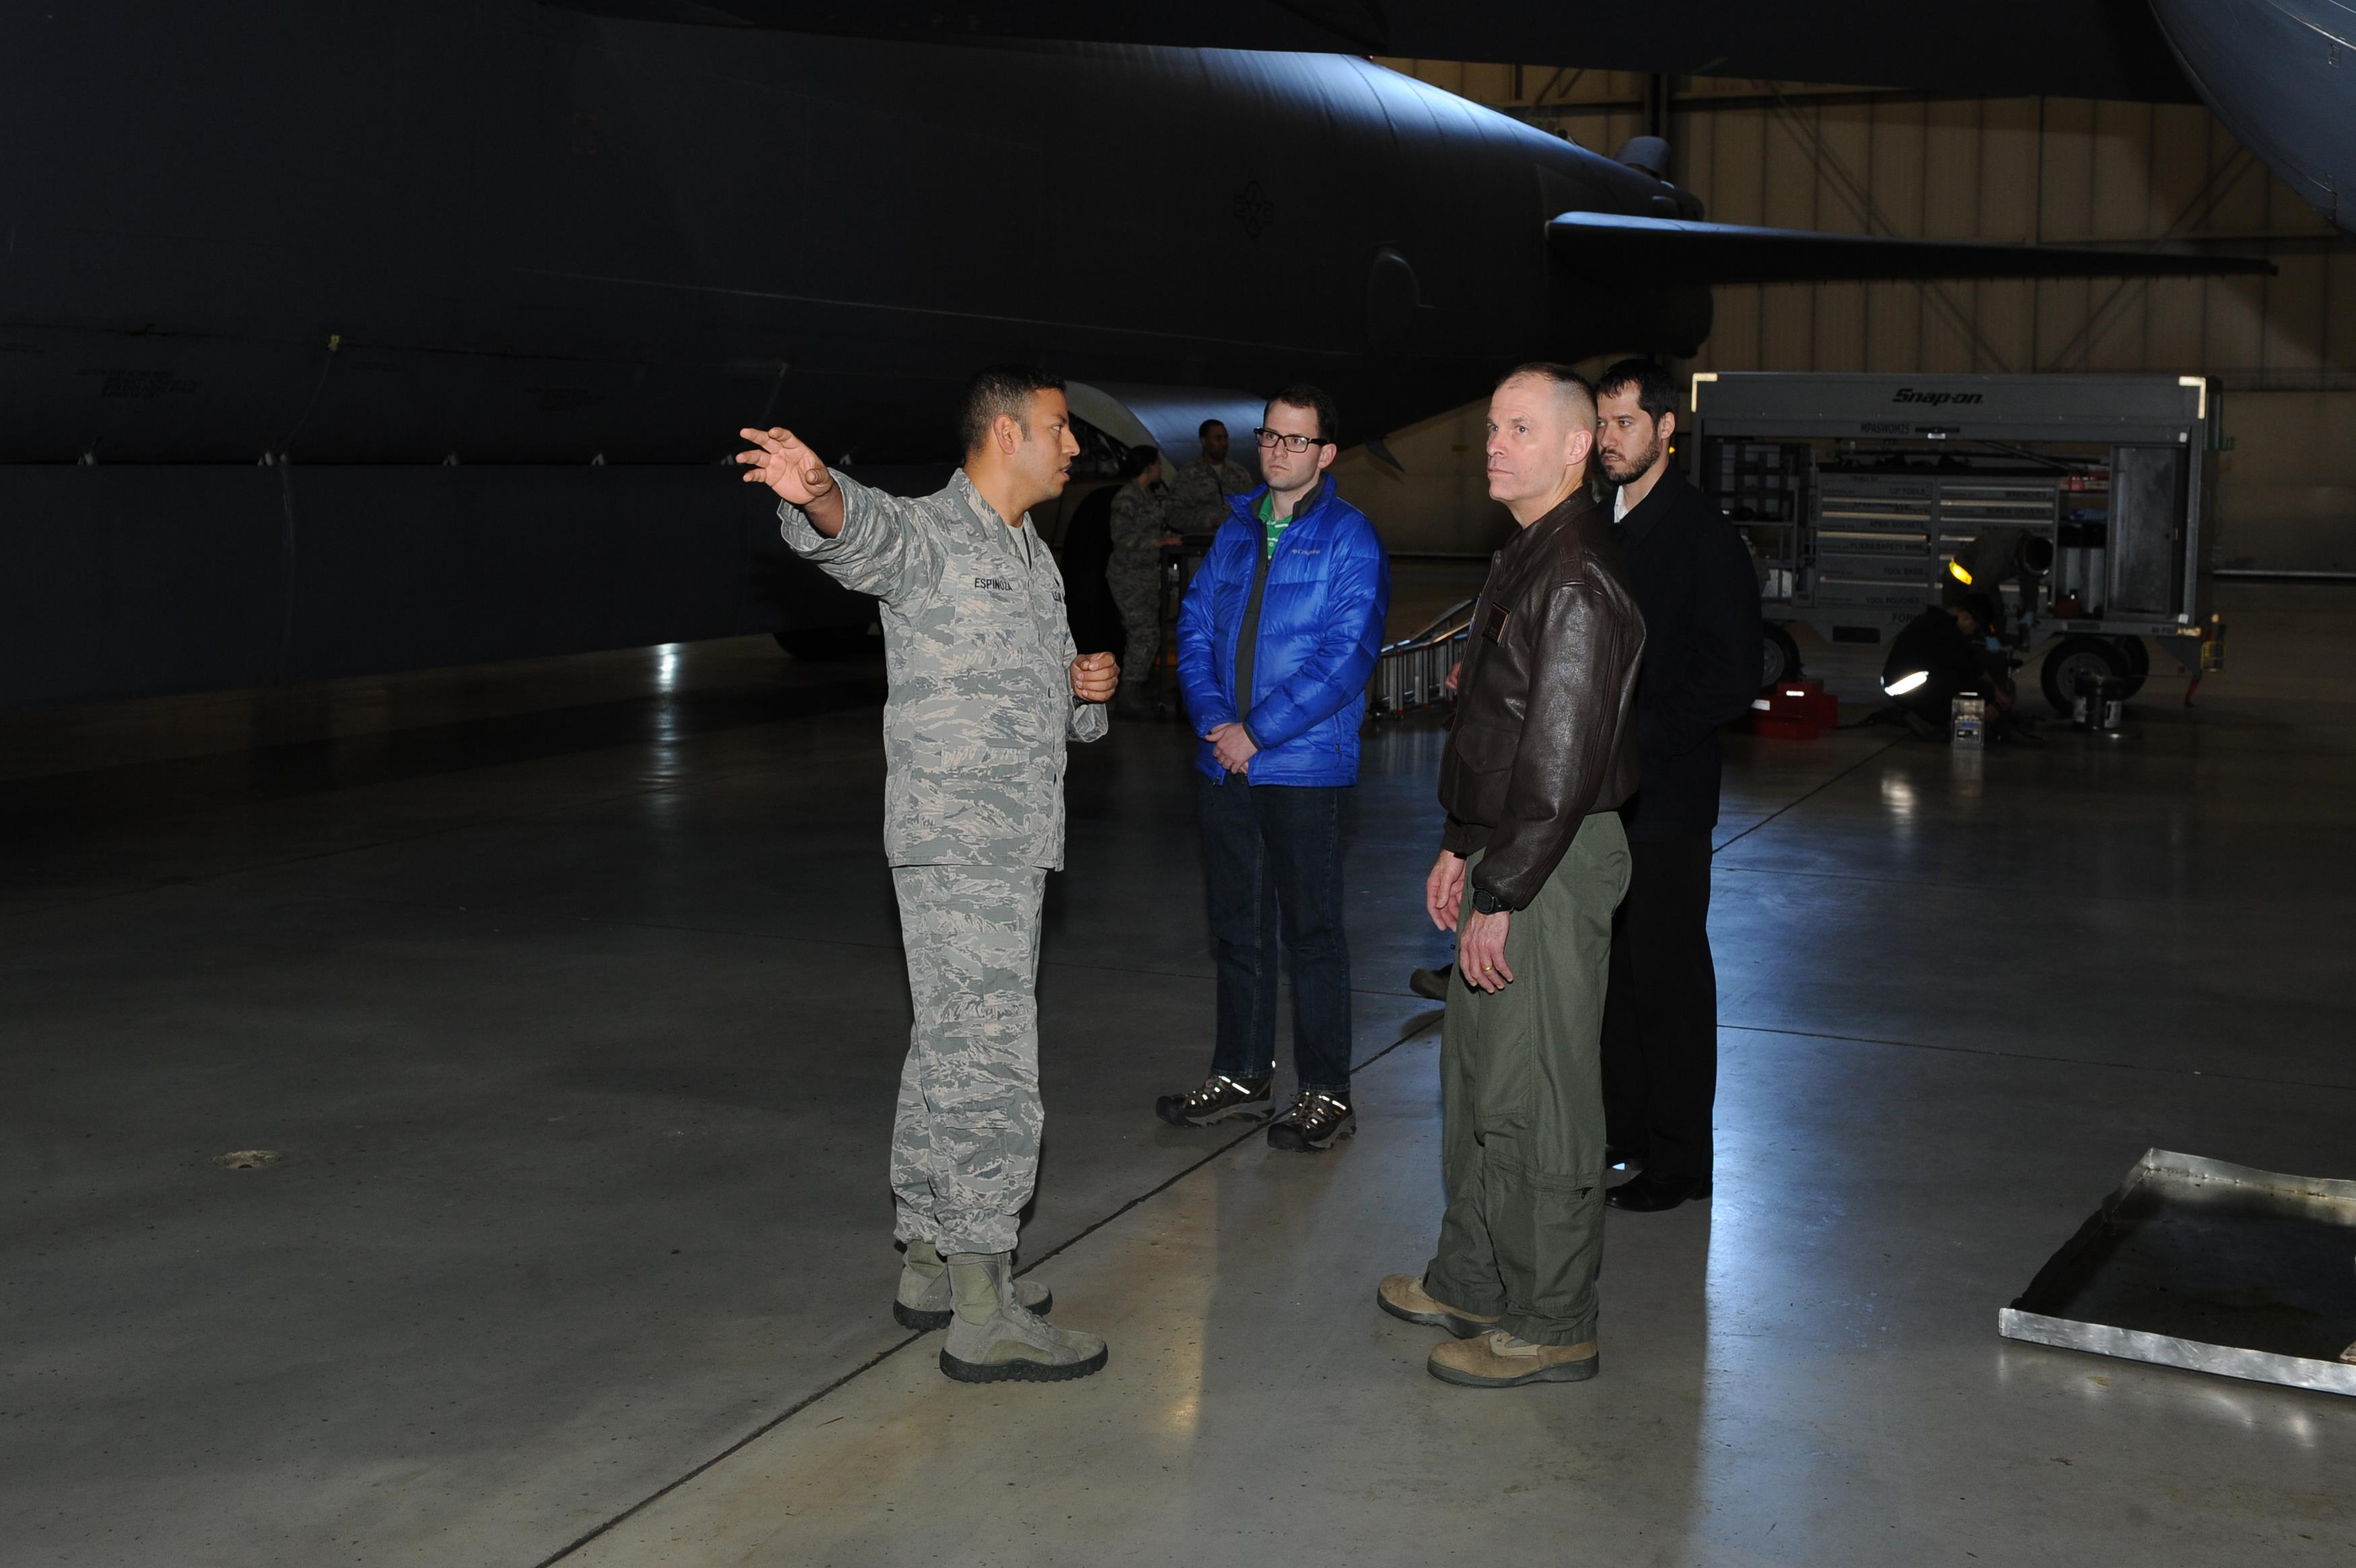 Lutton receives a tour of Dock 7 at Minot Air Force Base. Lutton received an external and internal tour of a B-52H Stratofortress.